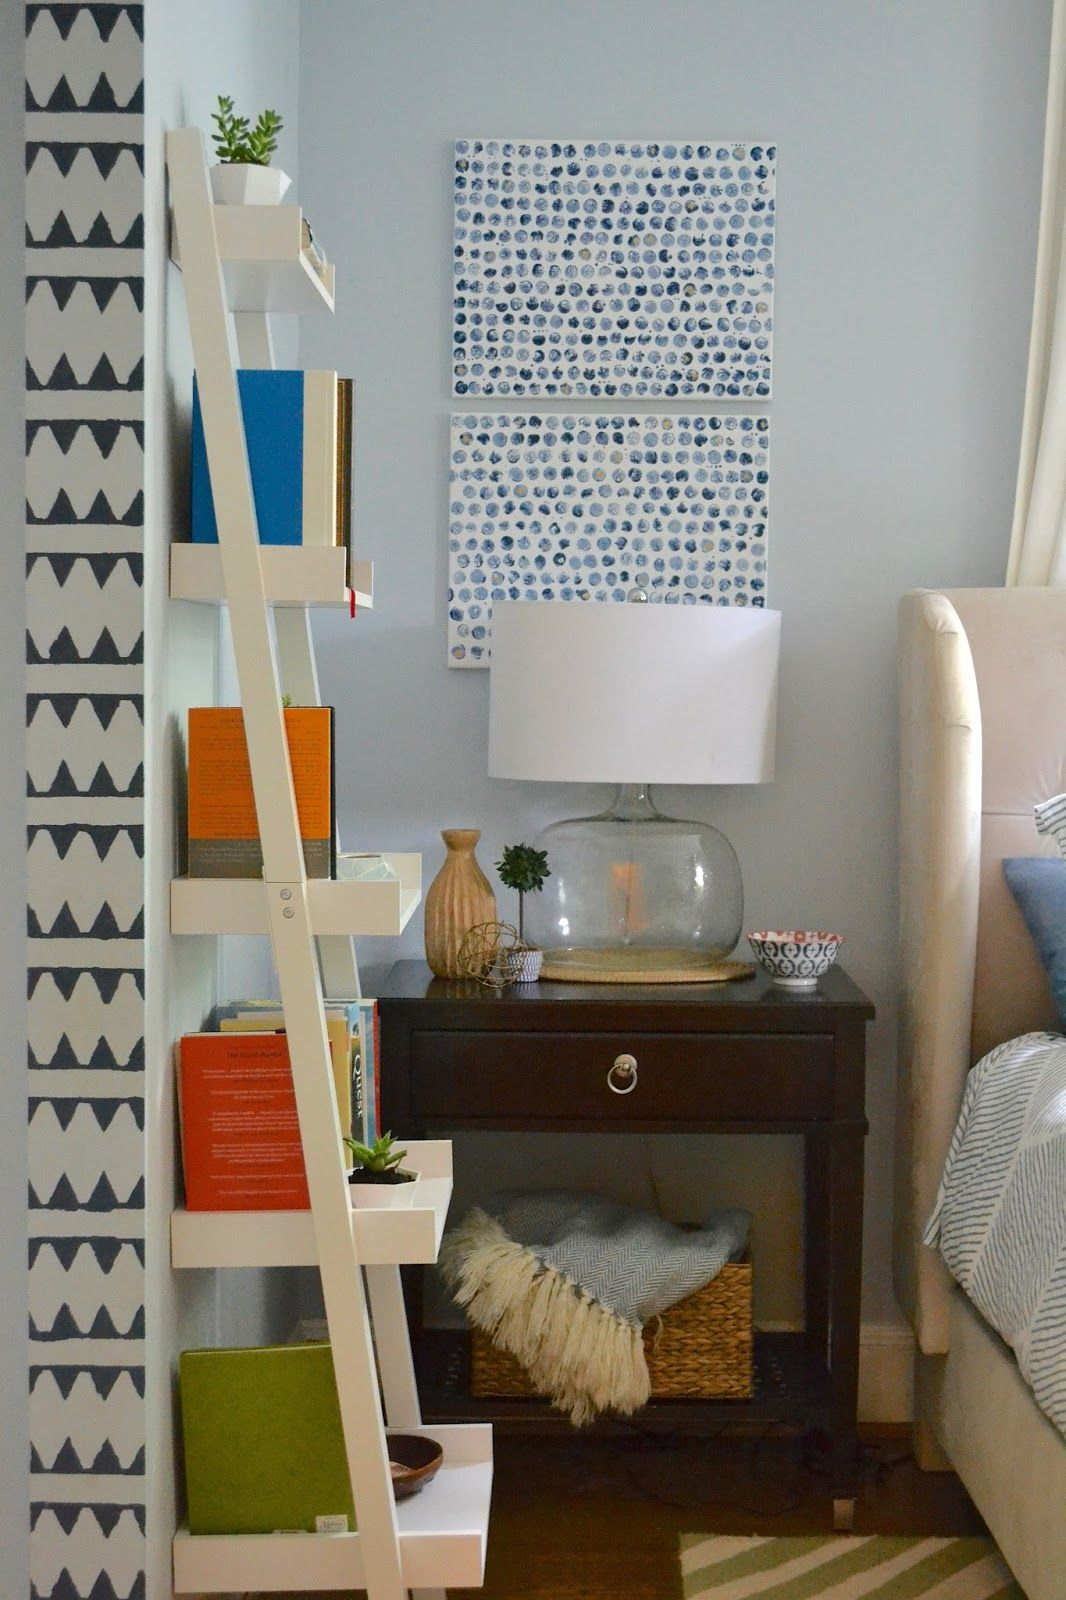 Ladder Bookshelf White Nightstand Styling DesignPOST Interiors